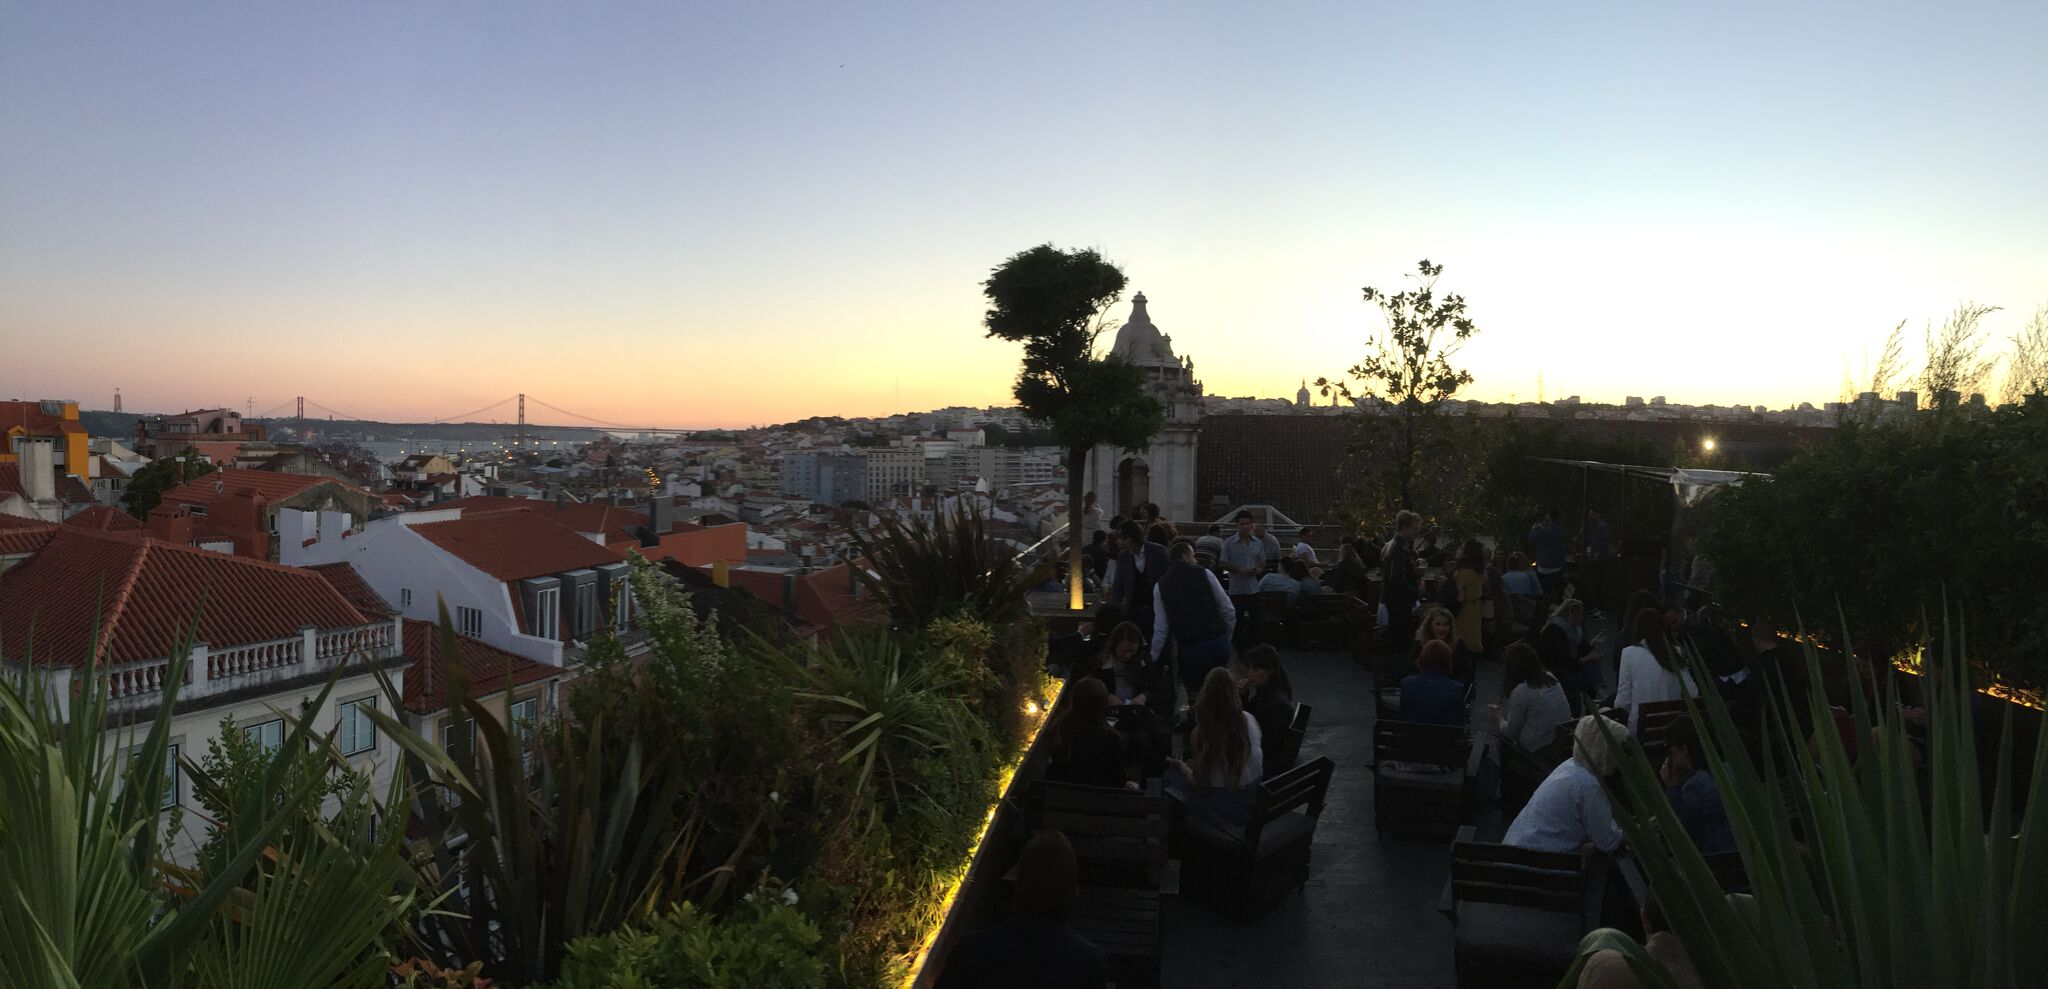 IMG 5132 1024x495 - 10+ Best Rooftop Bars To Catch Lisbon's Mesmerizing Sunsets